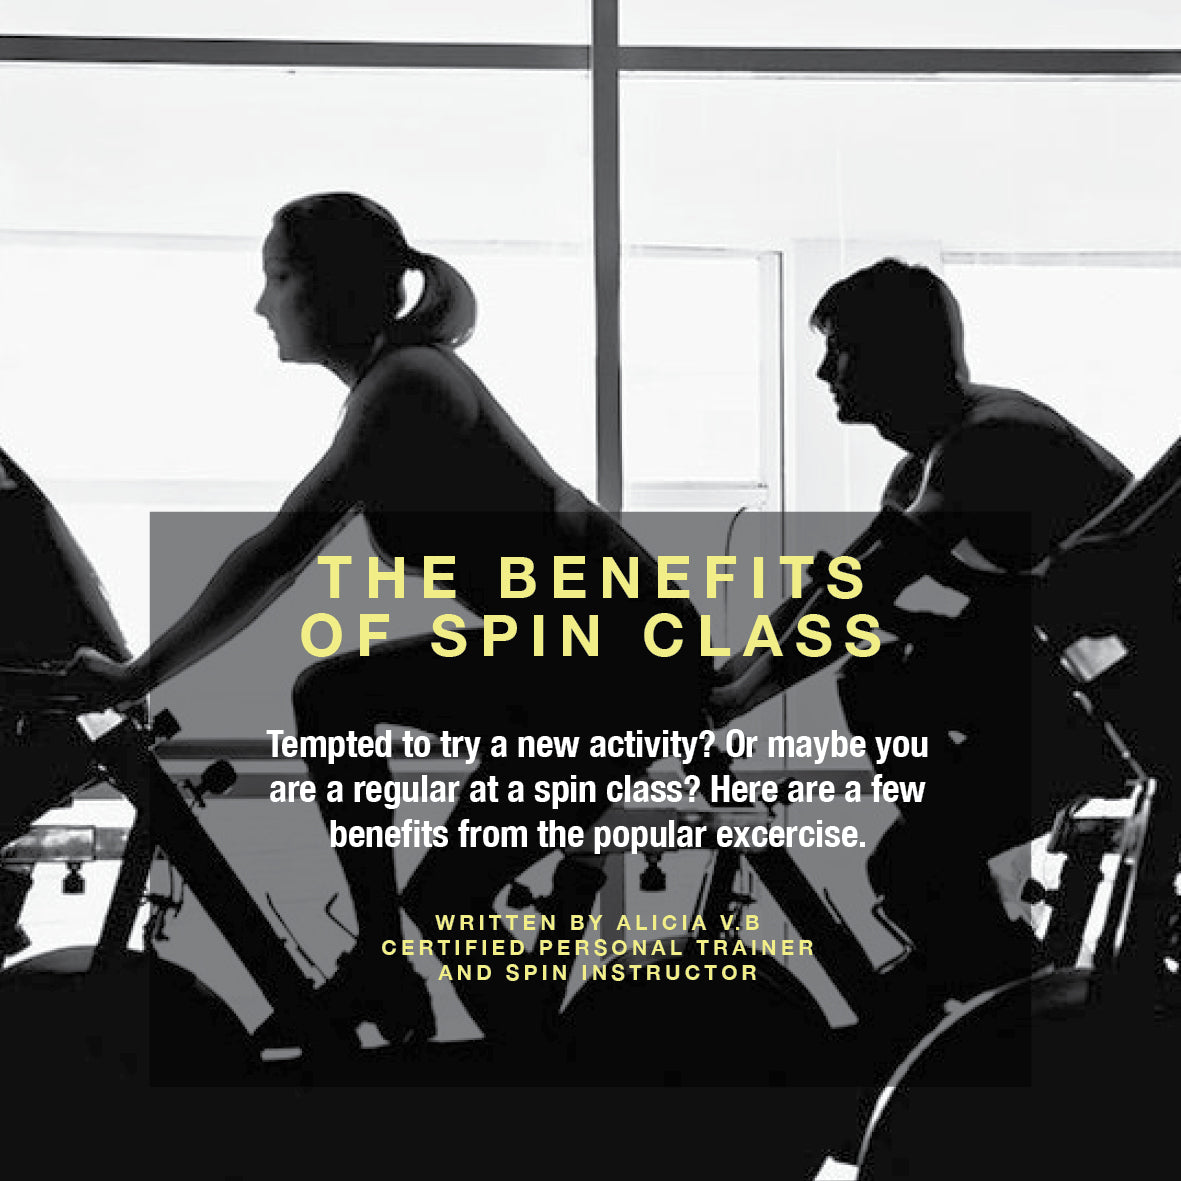 The benefits of spinning